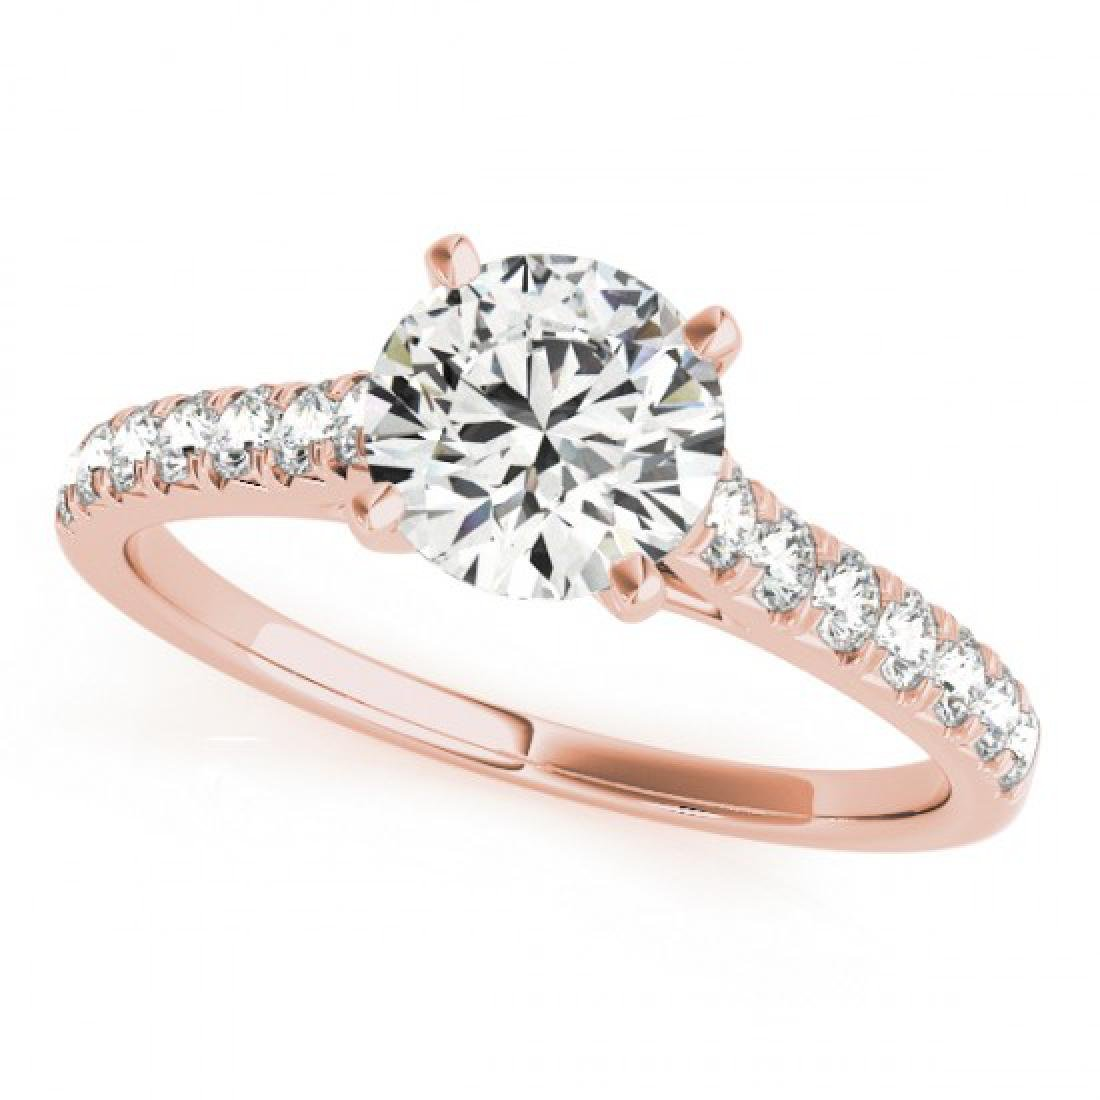 1.23 CTW Certified VS/SI Diamond Solitaire Ring 14K